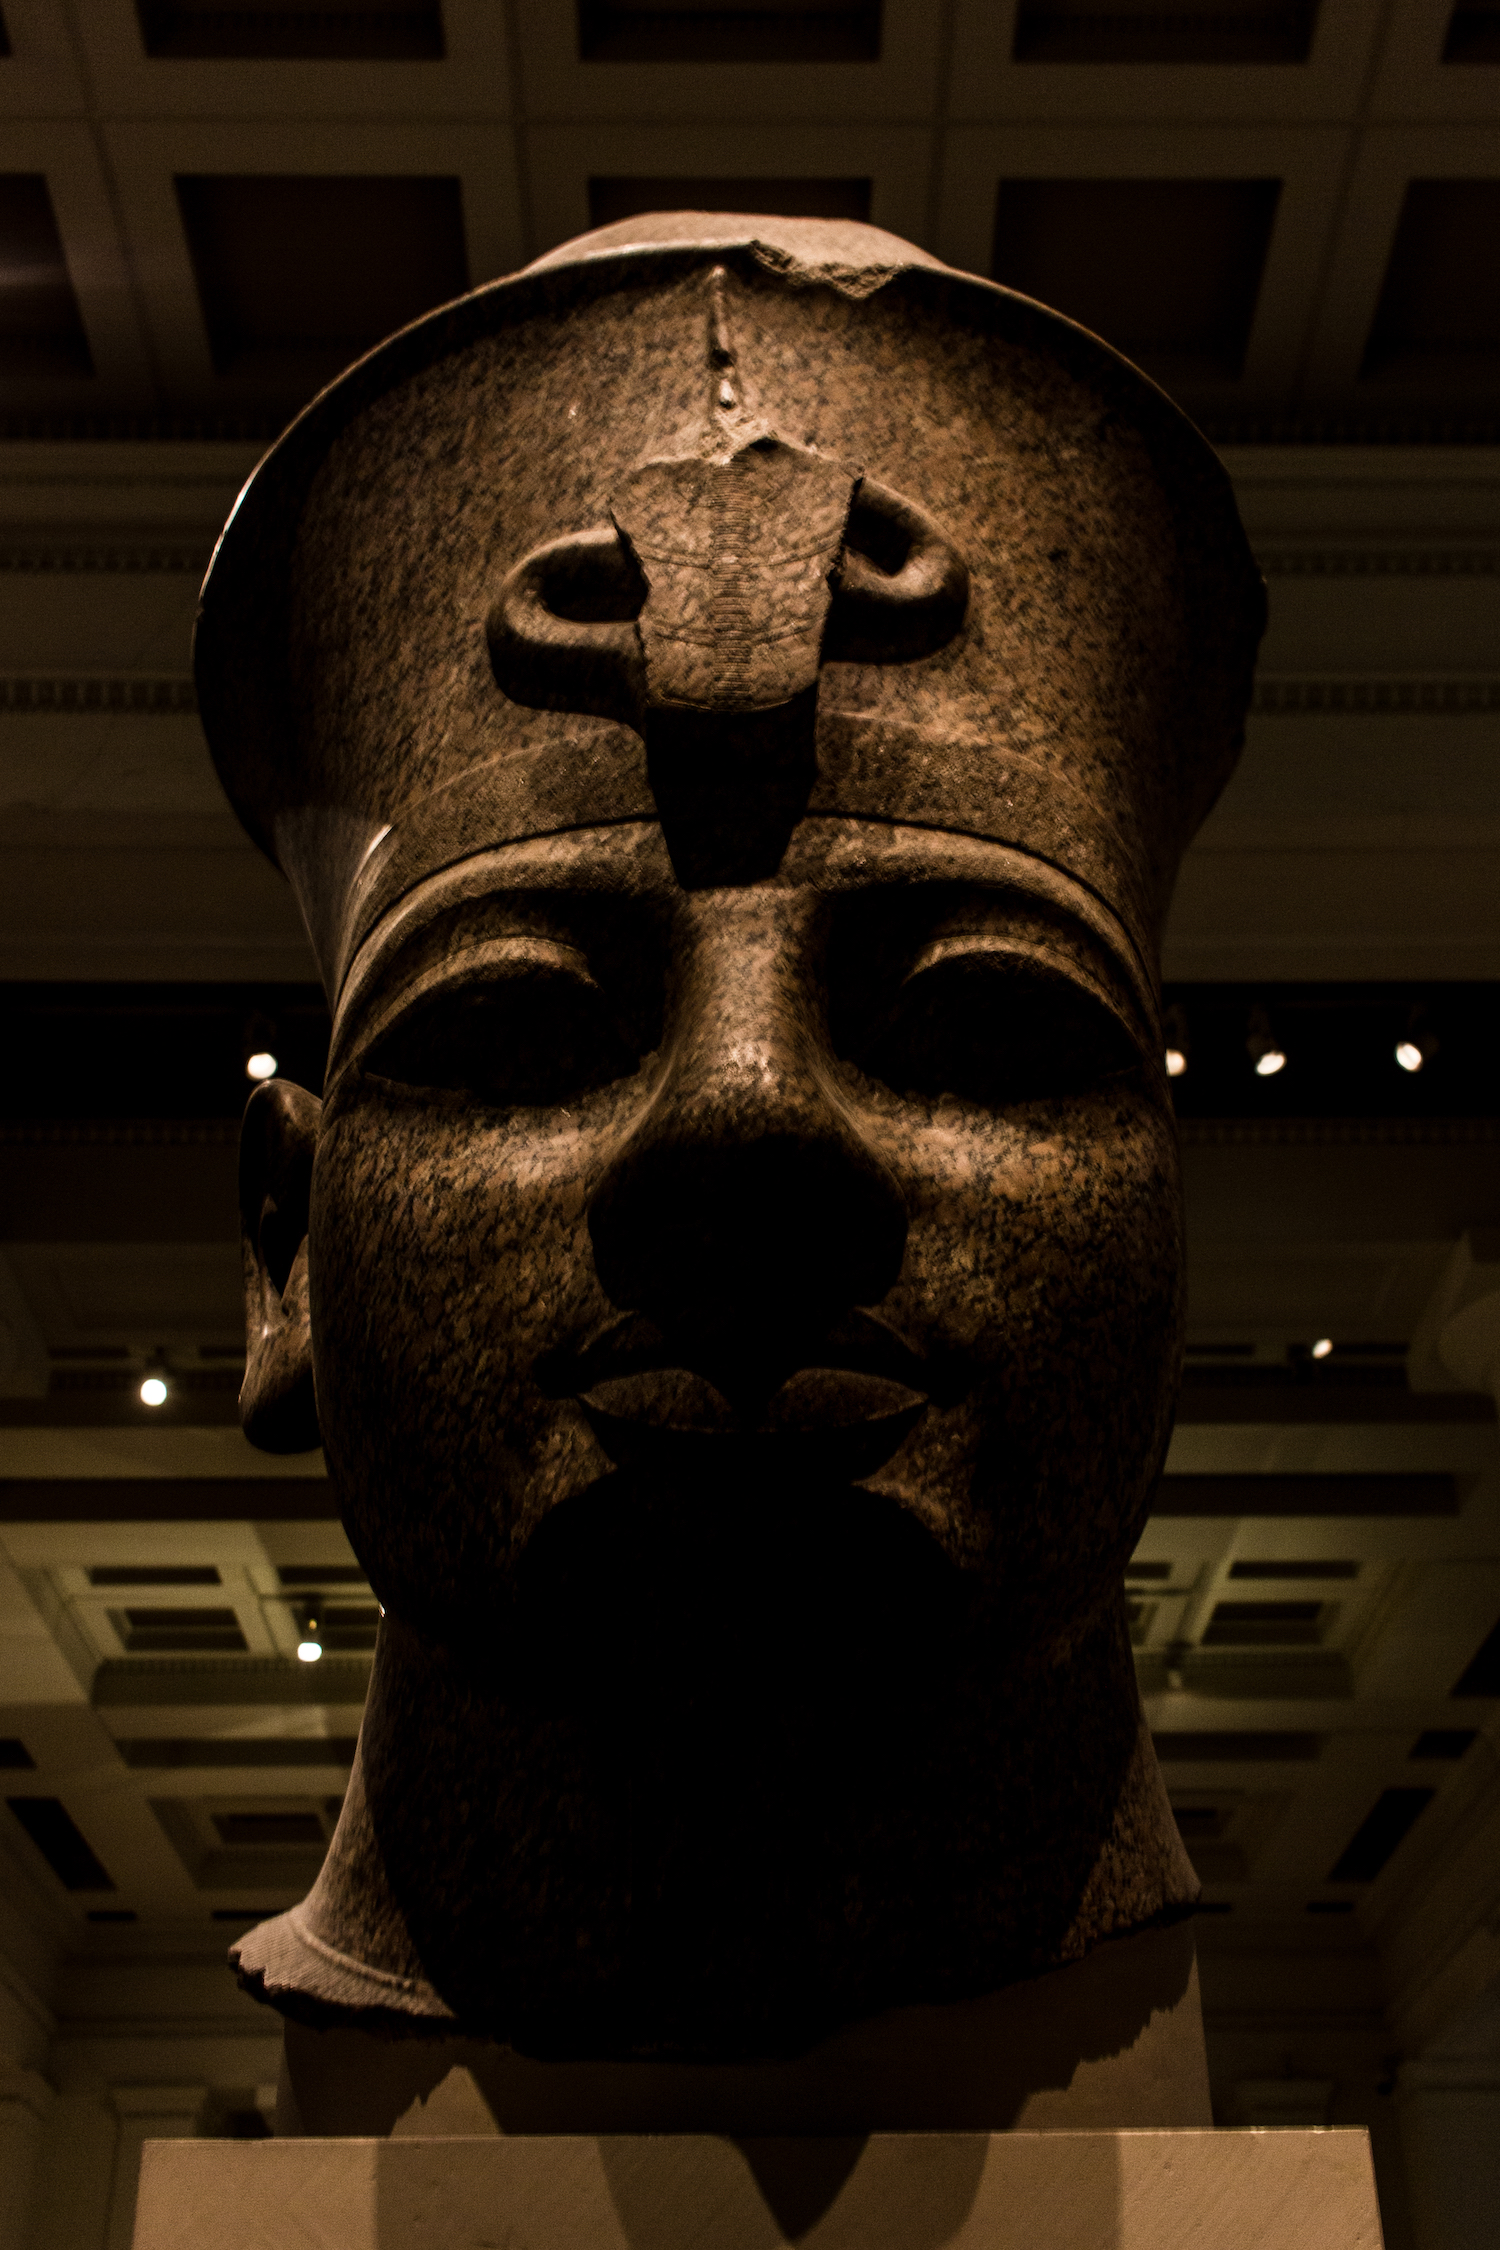 Professional Photography Stone Head Sculpture From Kemet Egypt Of King Amenophis III In British Museum London